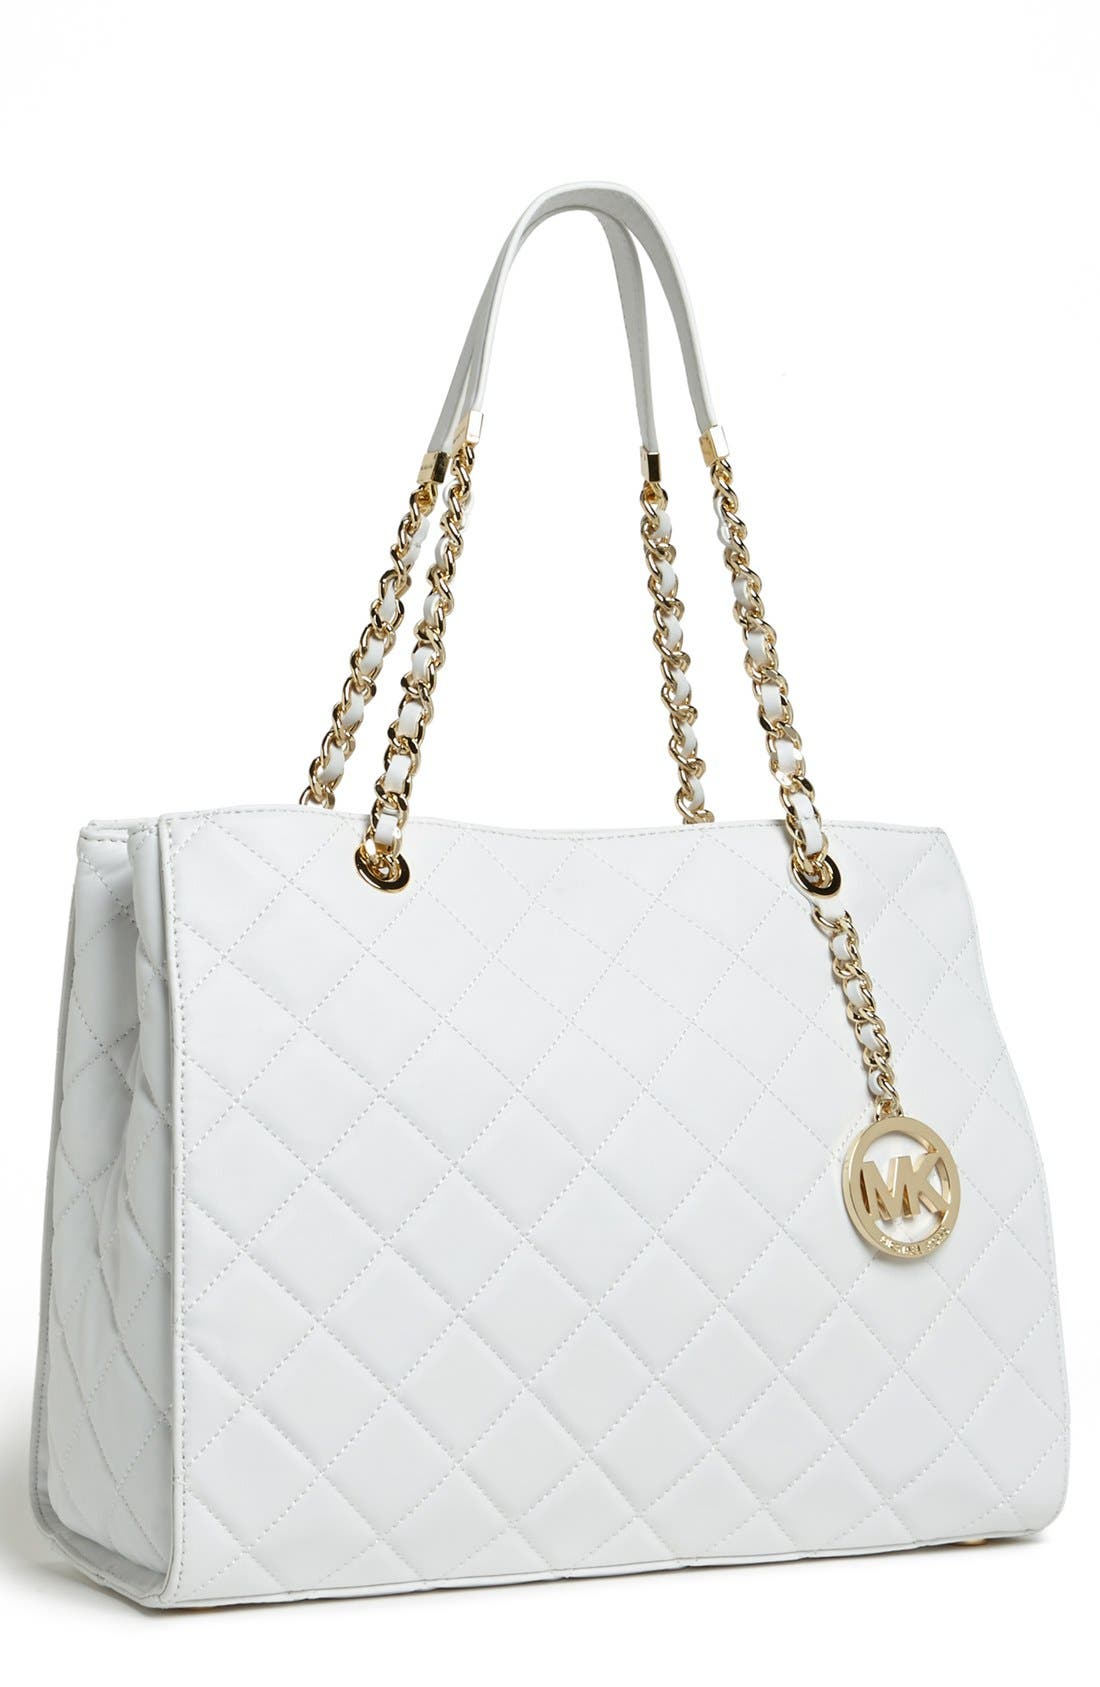 Alternate Image 1 Selected - MICHAEL Michael Kors 'Susannah' Quilted Leather Tote